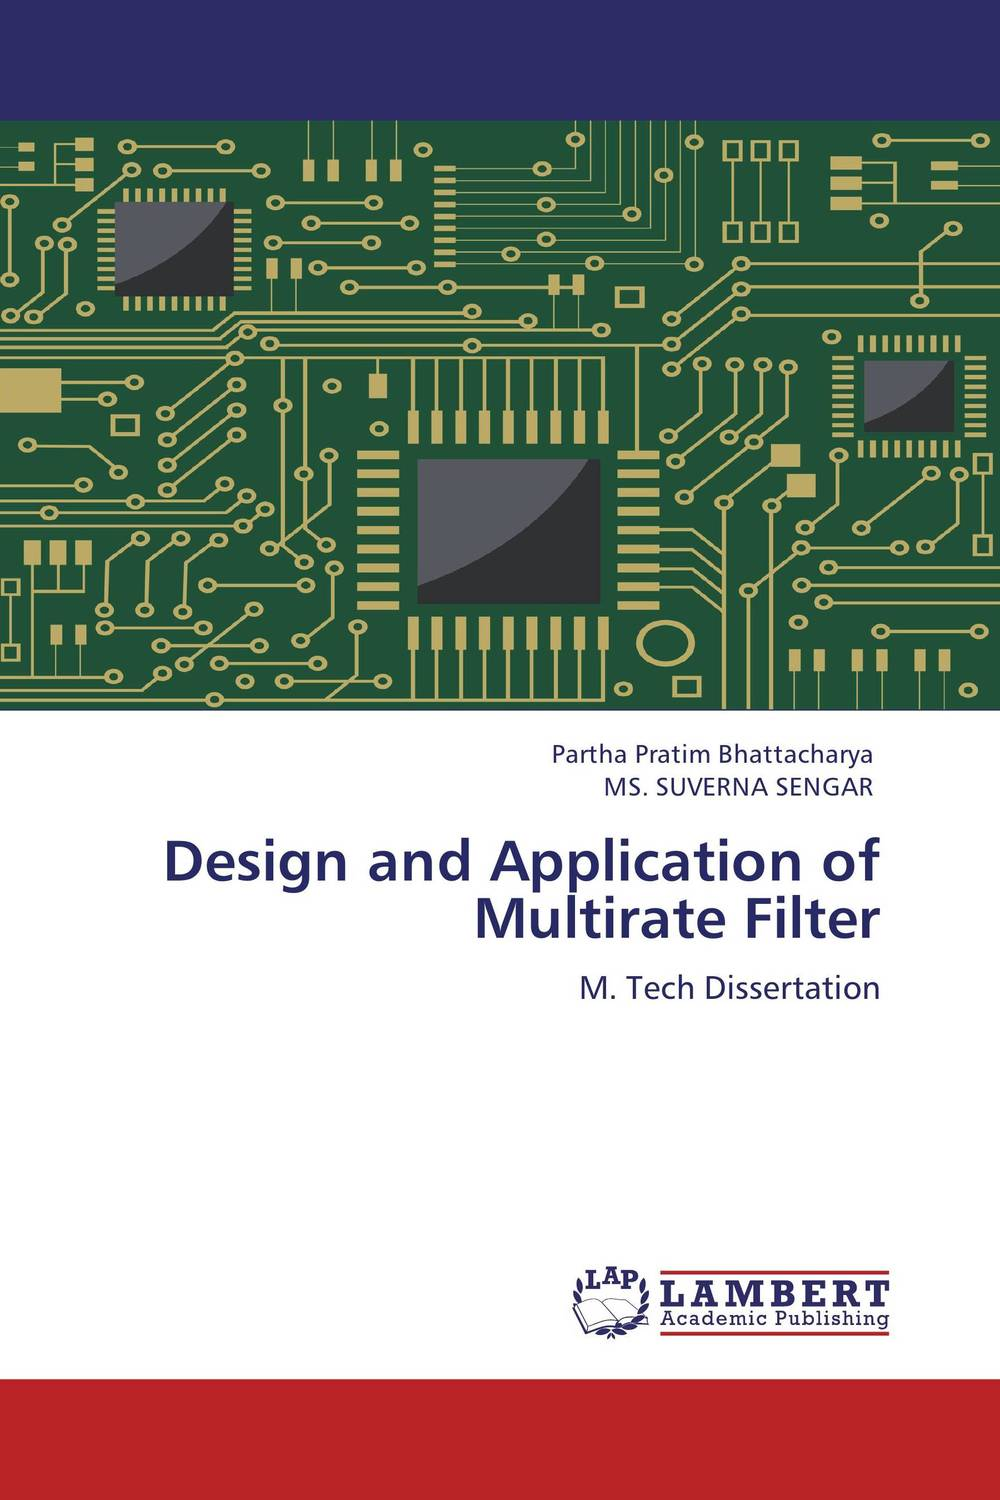 Design and Application of Multirate Filter interference cancellation methods in mimo ofdm systems